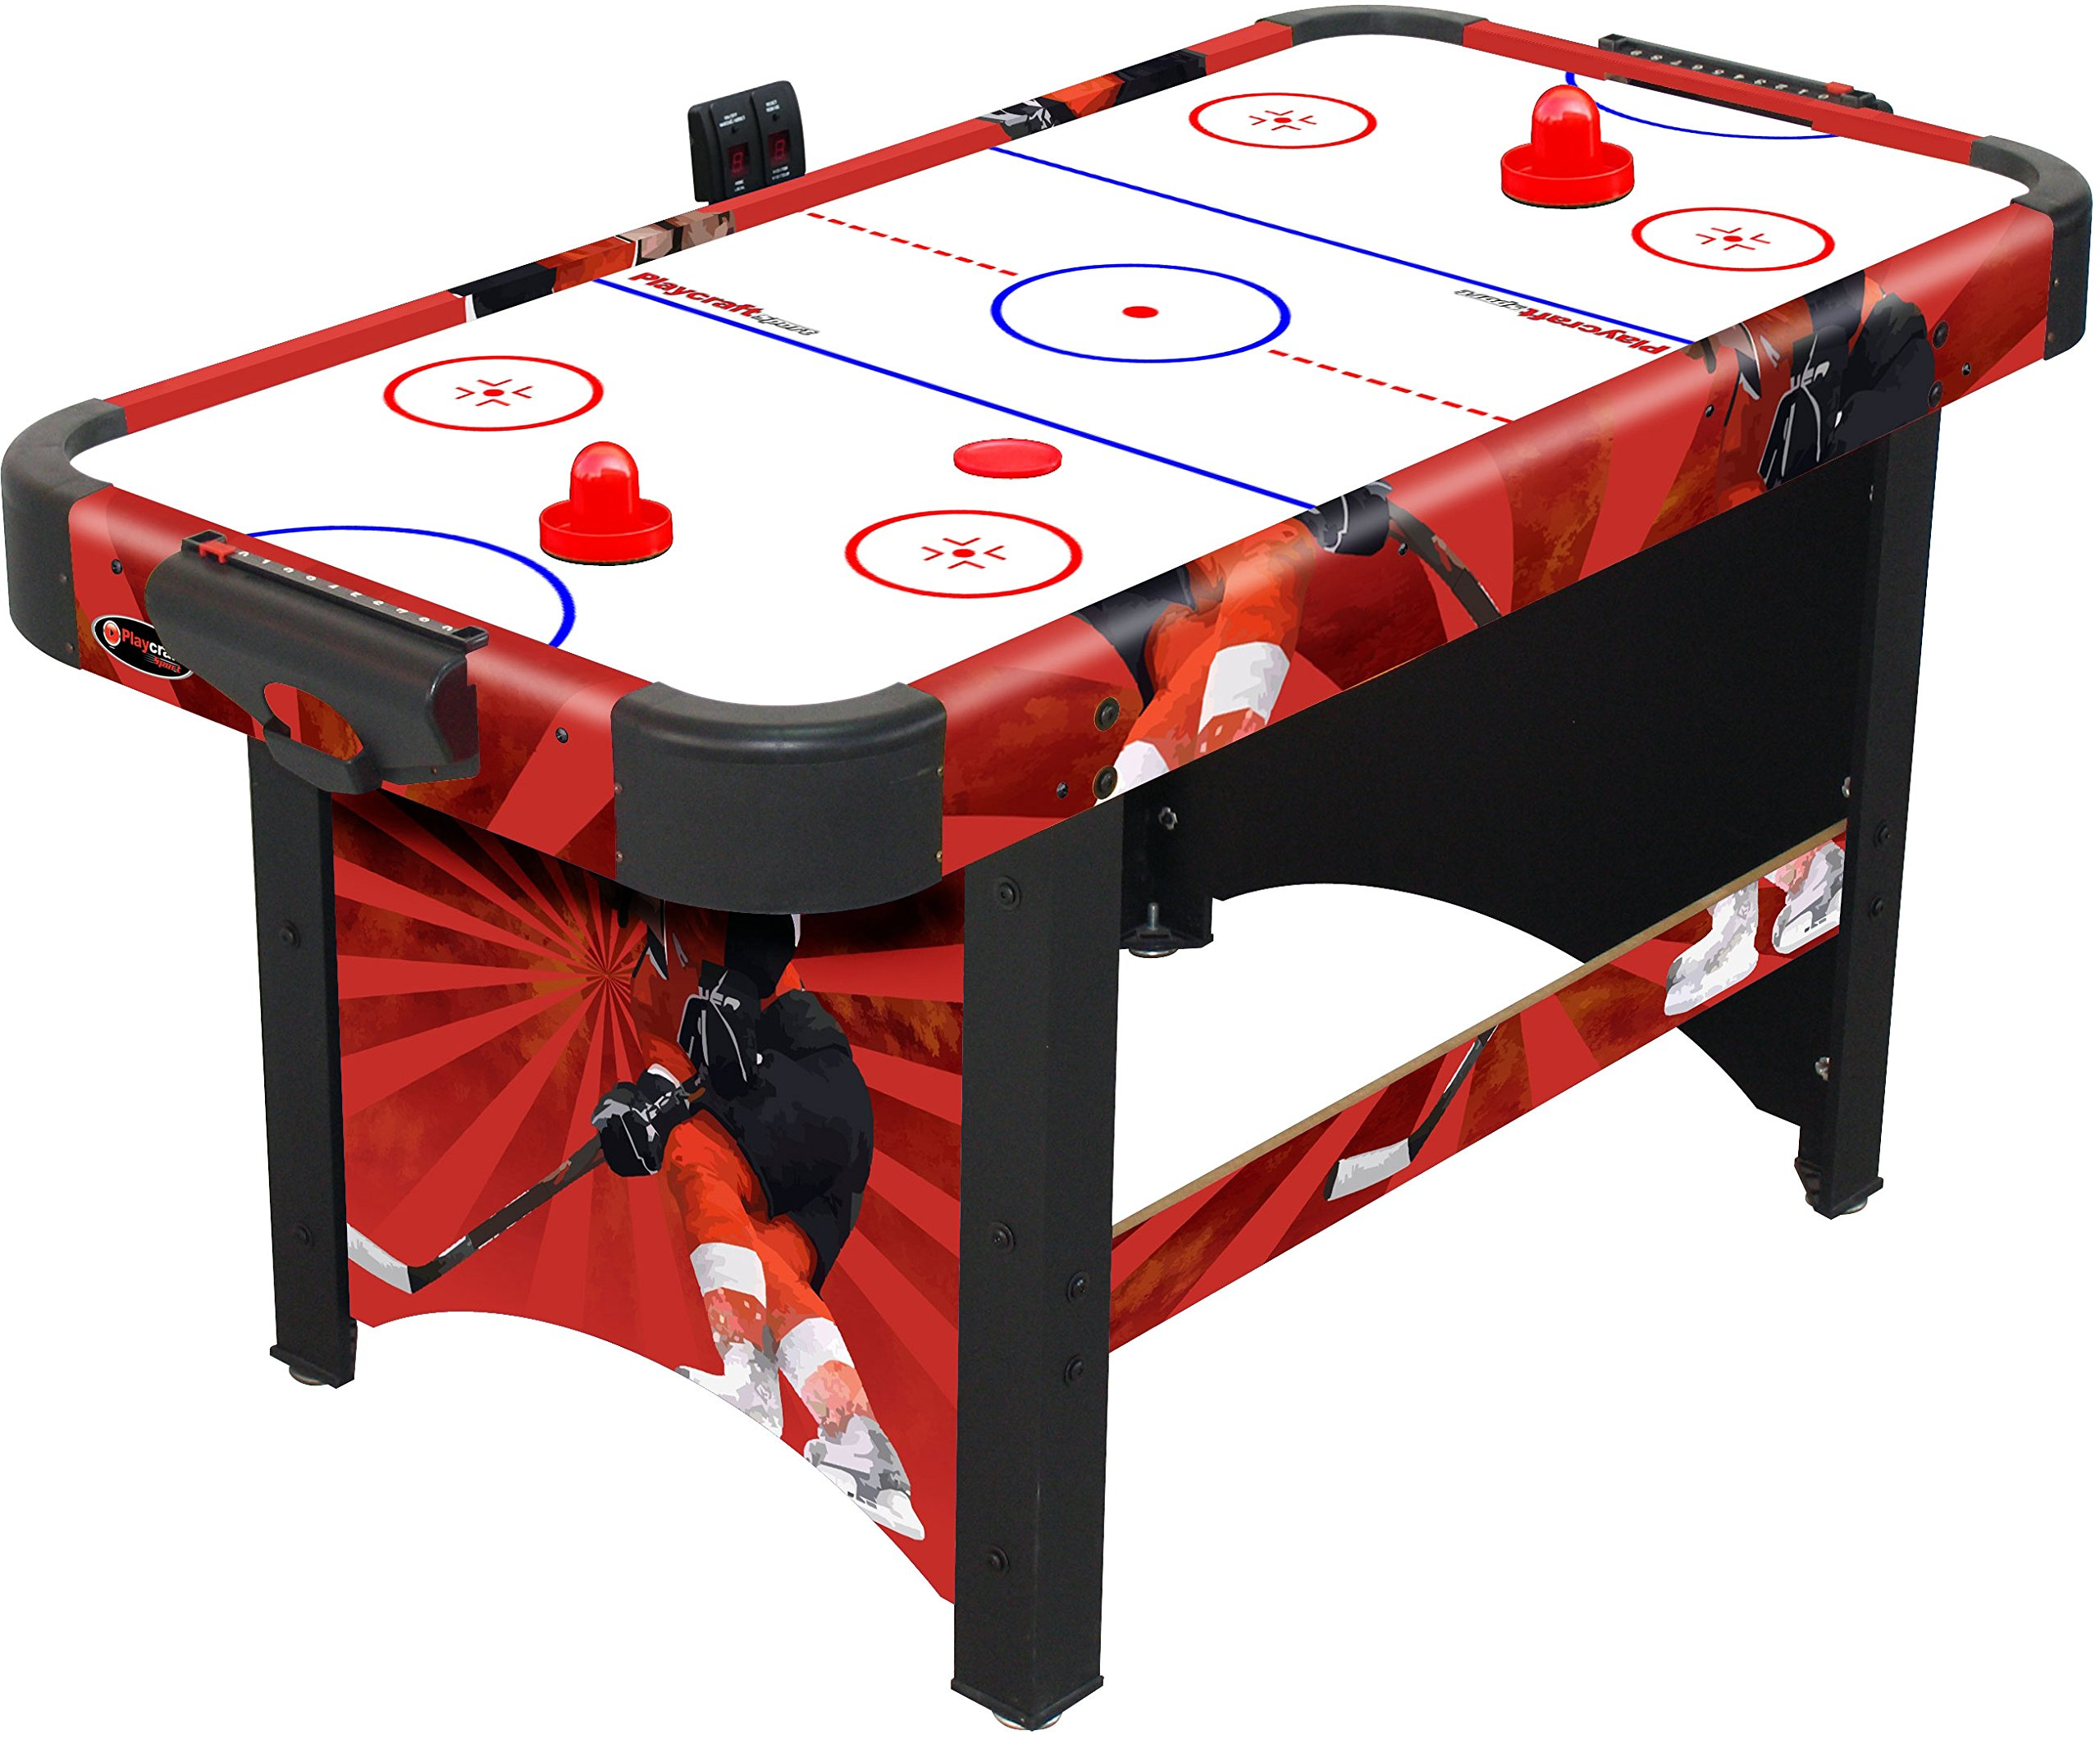 Playcraft Sport Shoot Out Plus Air Hockey Table, Red by Playcraft Sport